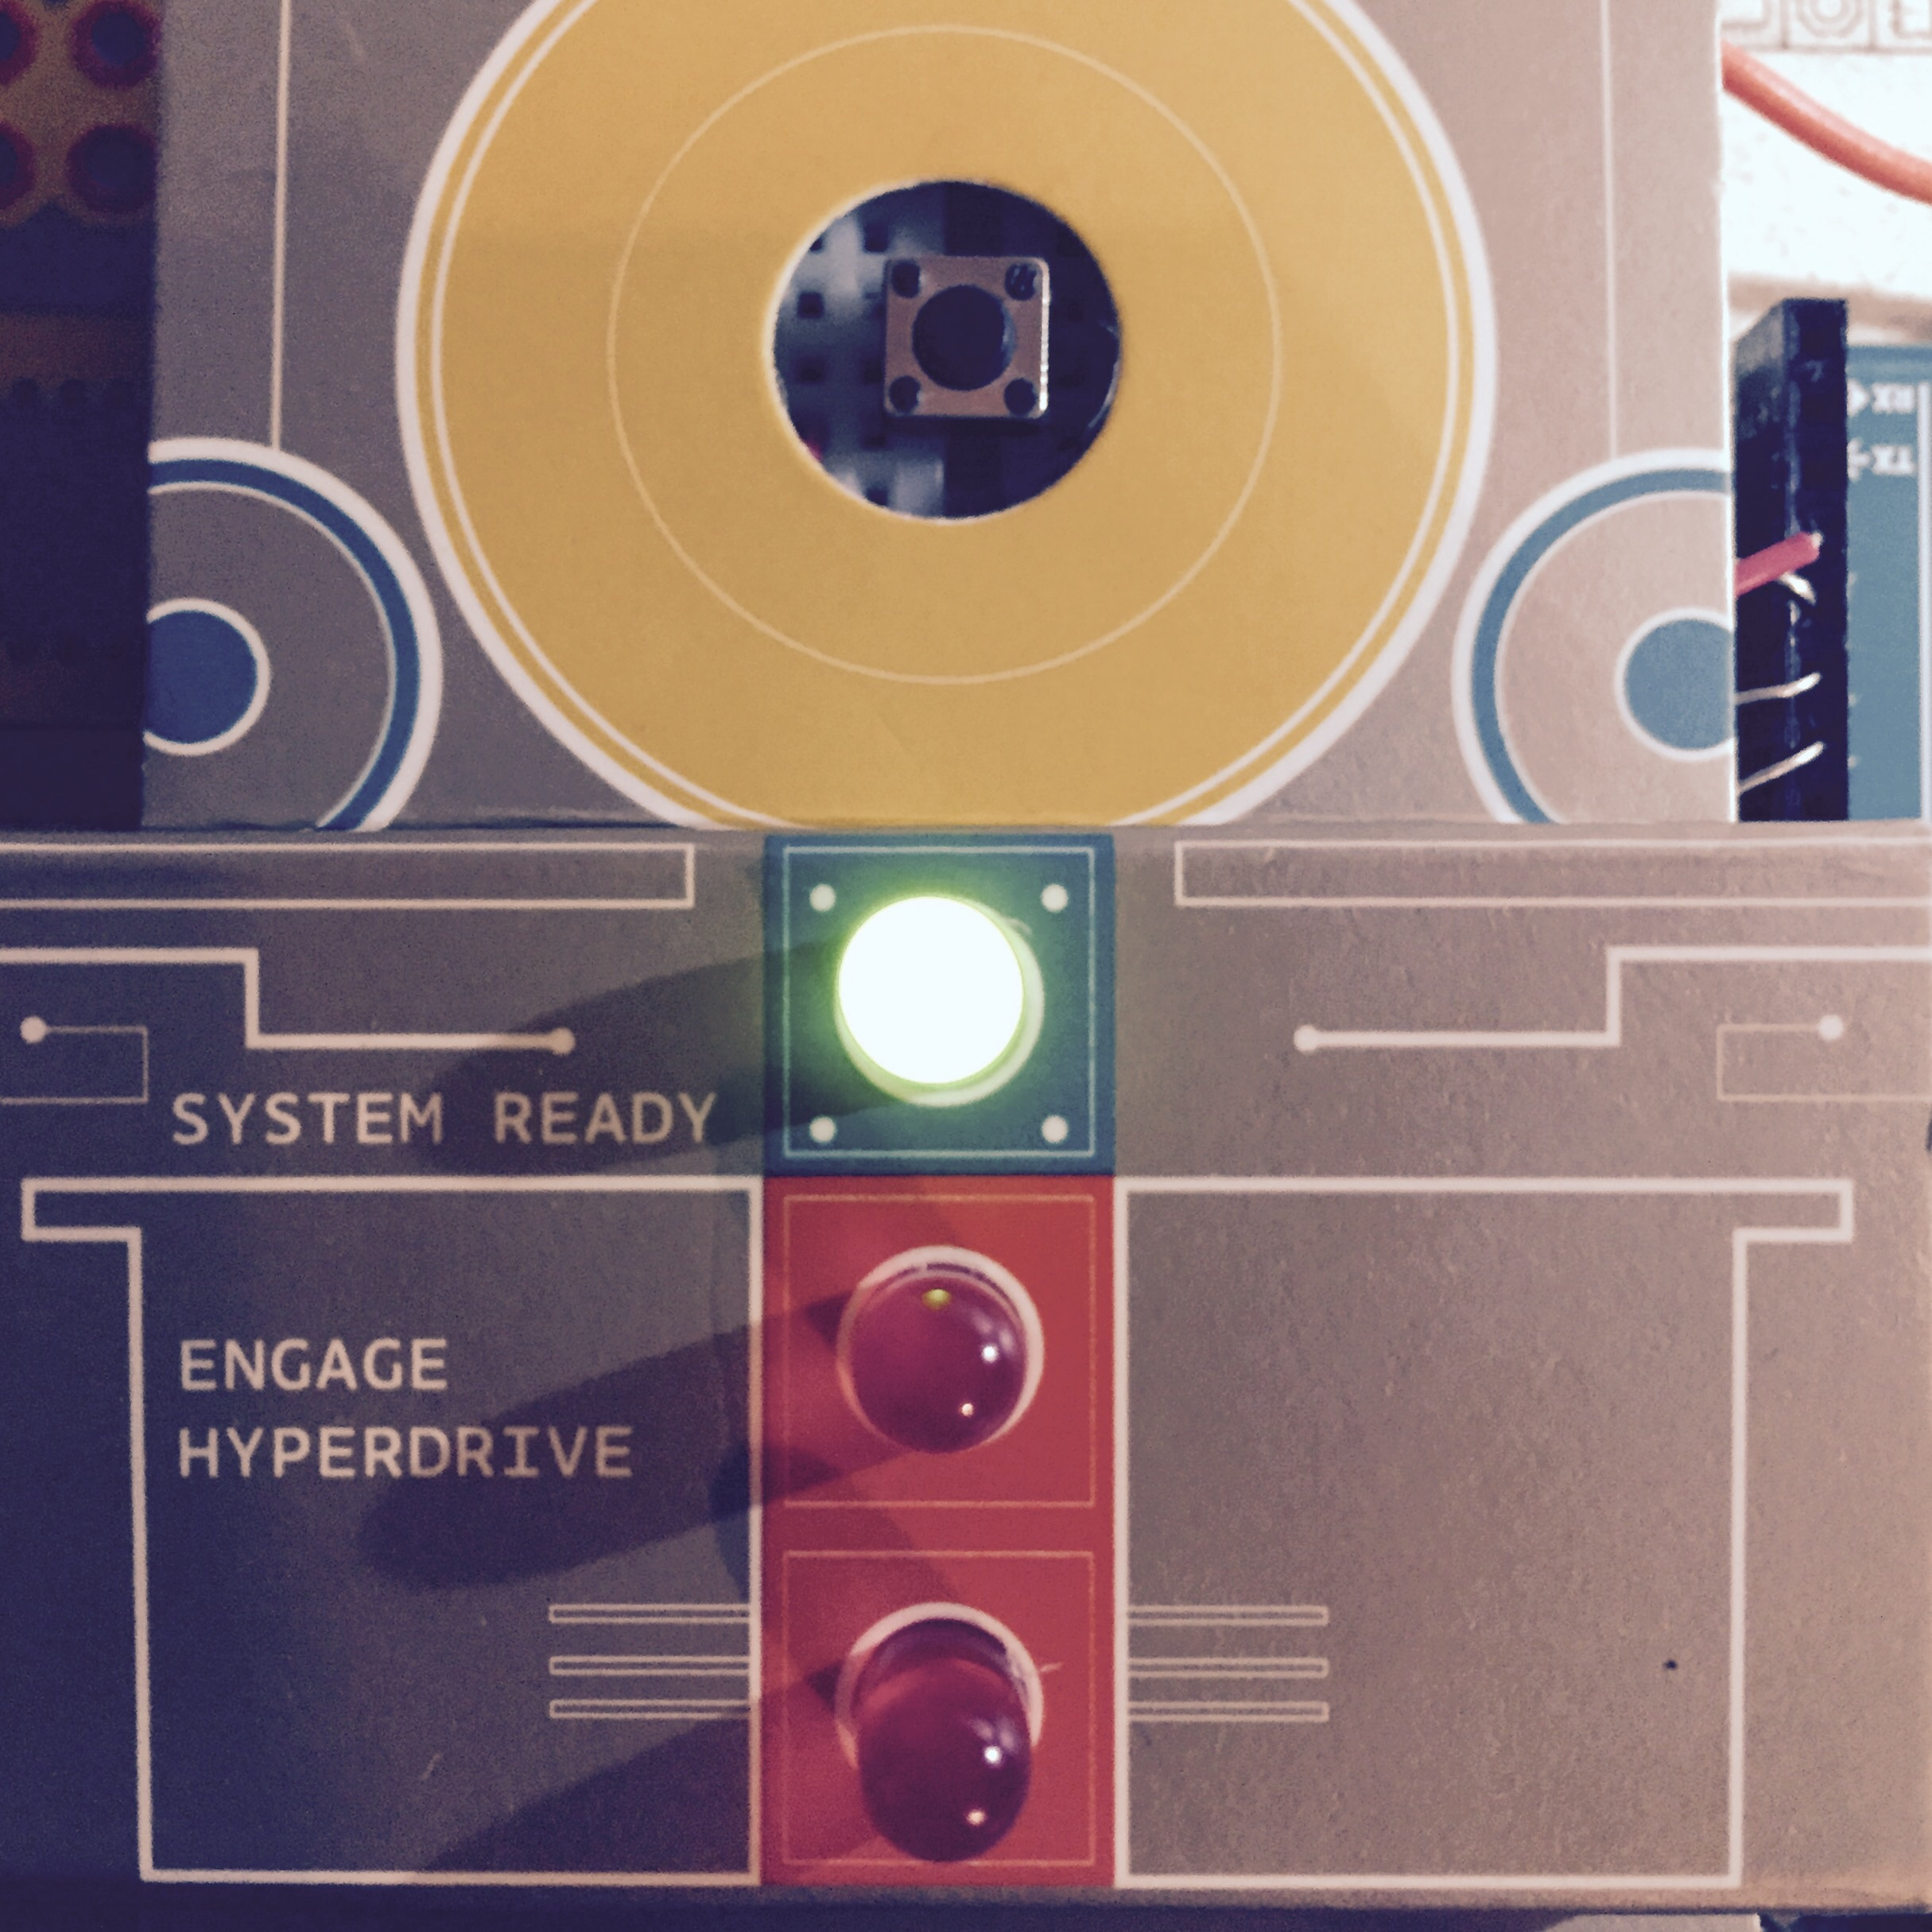 Arduino Starter Series - The Spaceship Hyperdrive